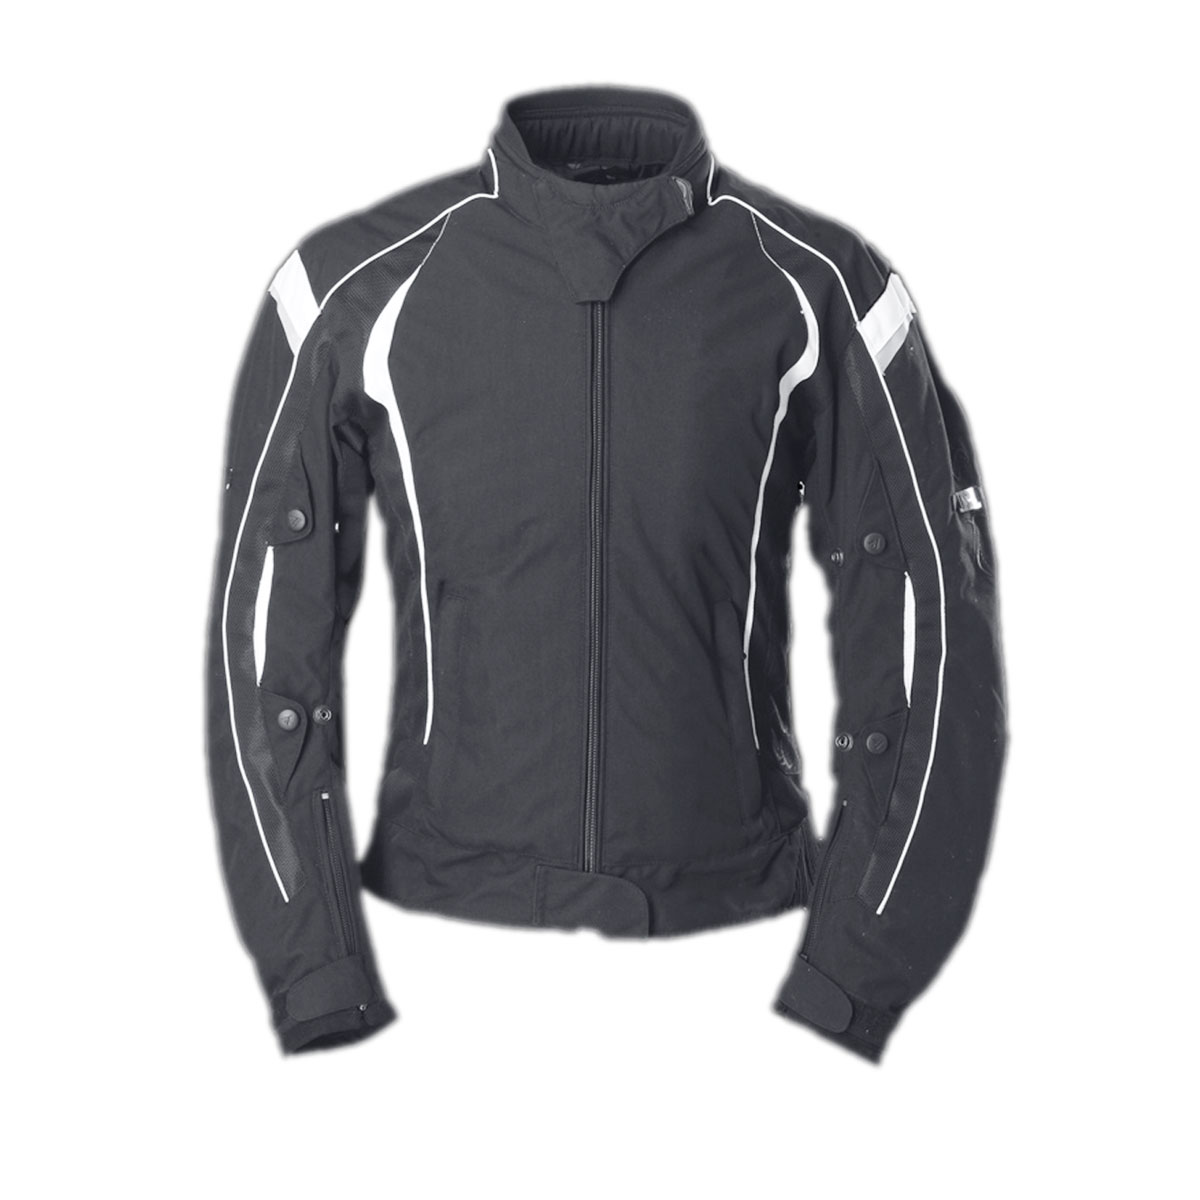 BLACK FEMALE CORDURA JACKET WITH UNIQUE DESIGN